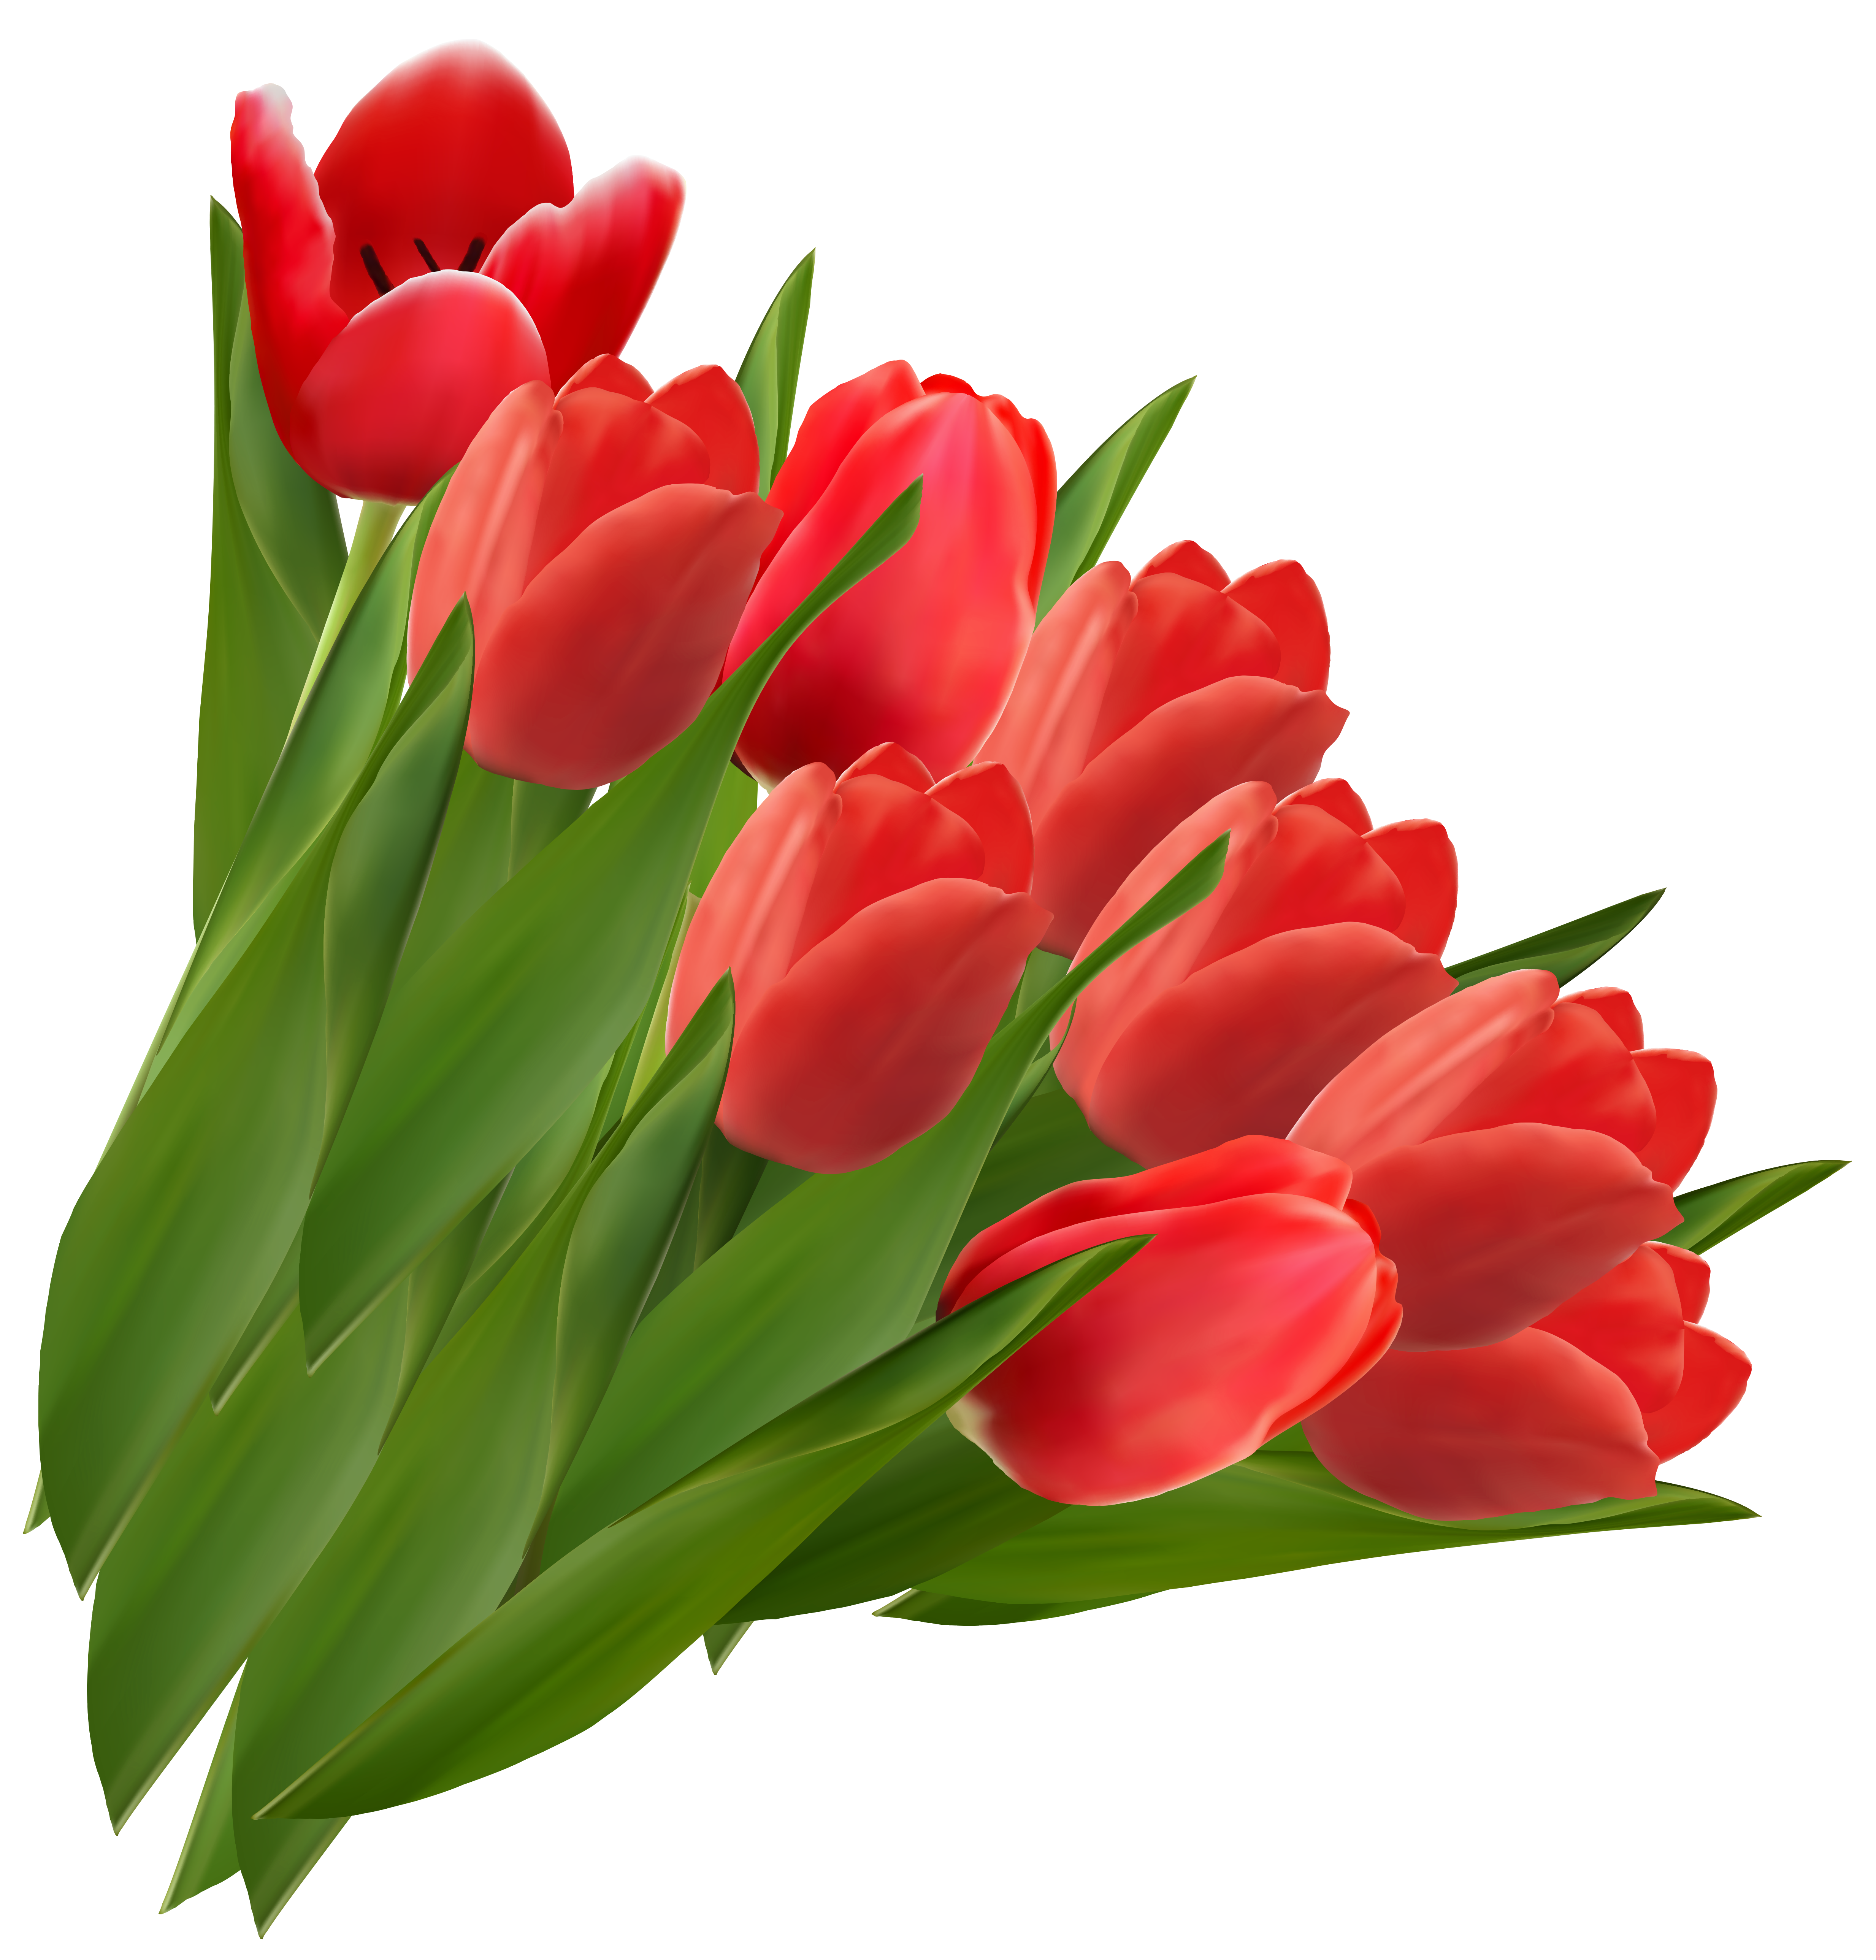 Tulips clipart. Red png picture gallery